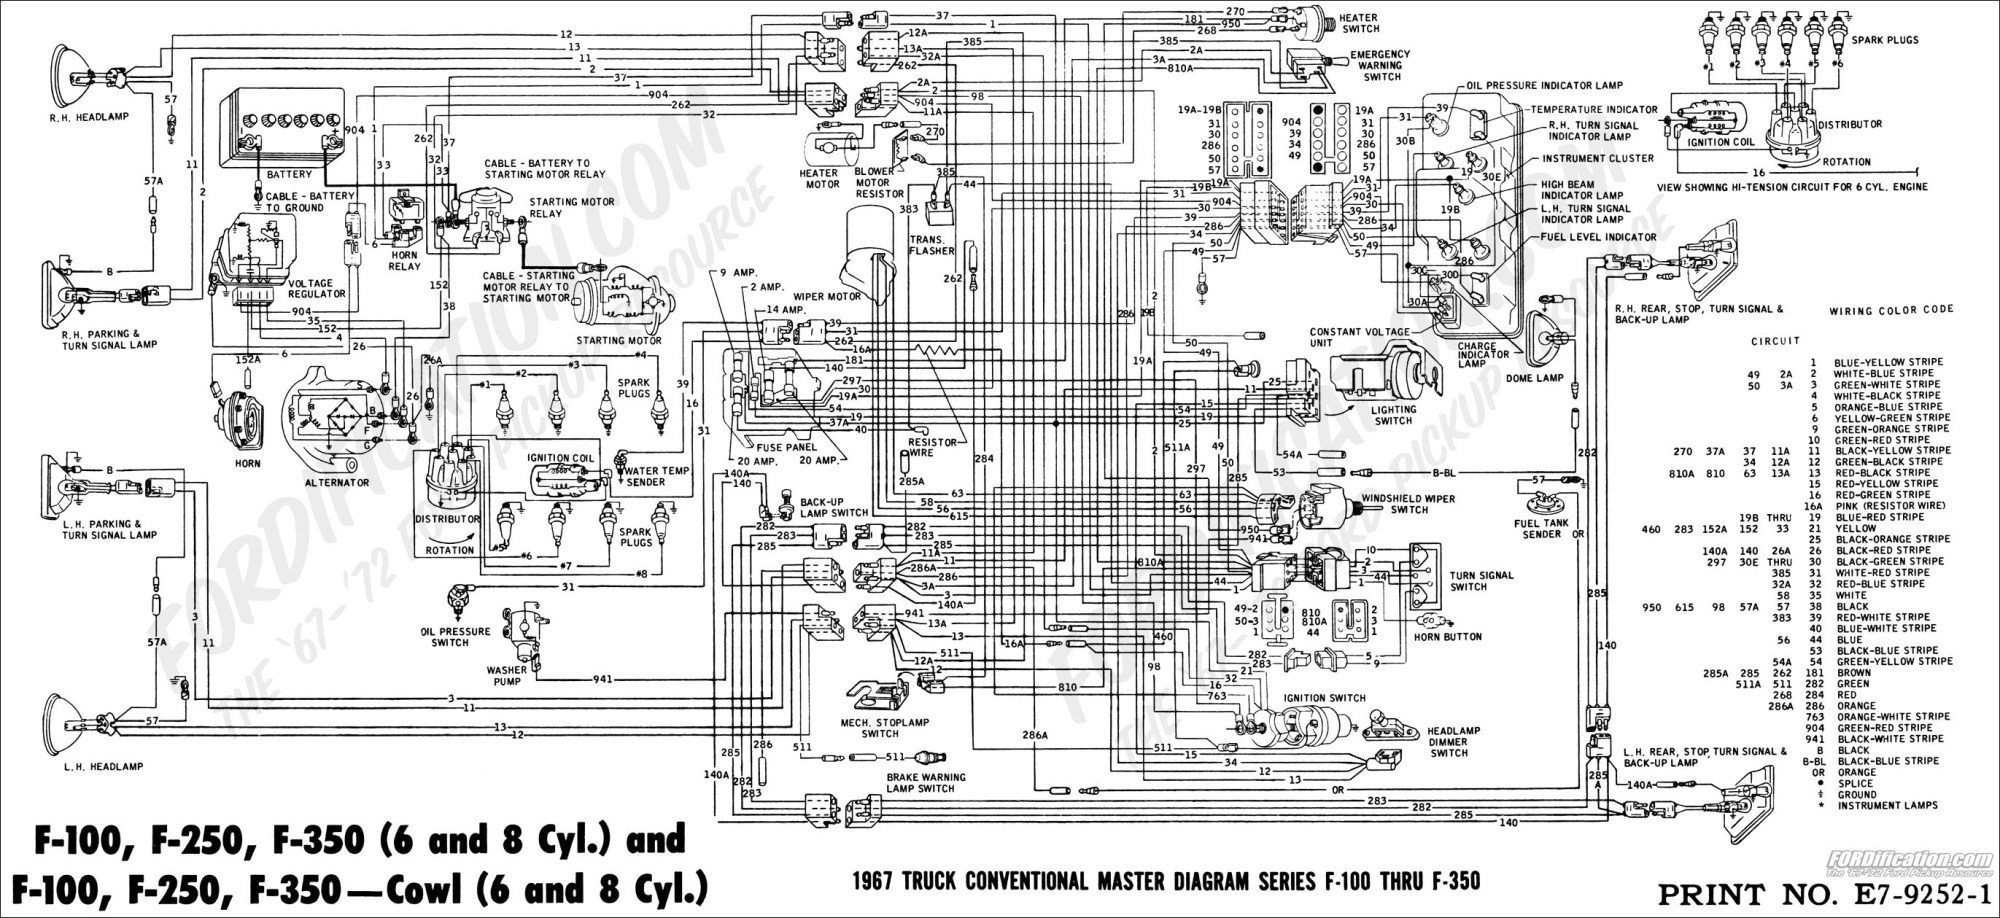 hight resolution of 1989 ford dash cluster wiring diagram wiring diagram mega f150 instrument cluster wiring diagram wiring diagram